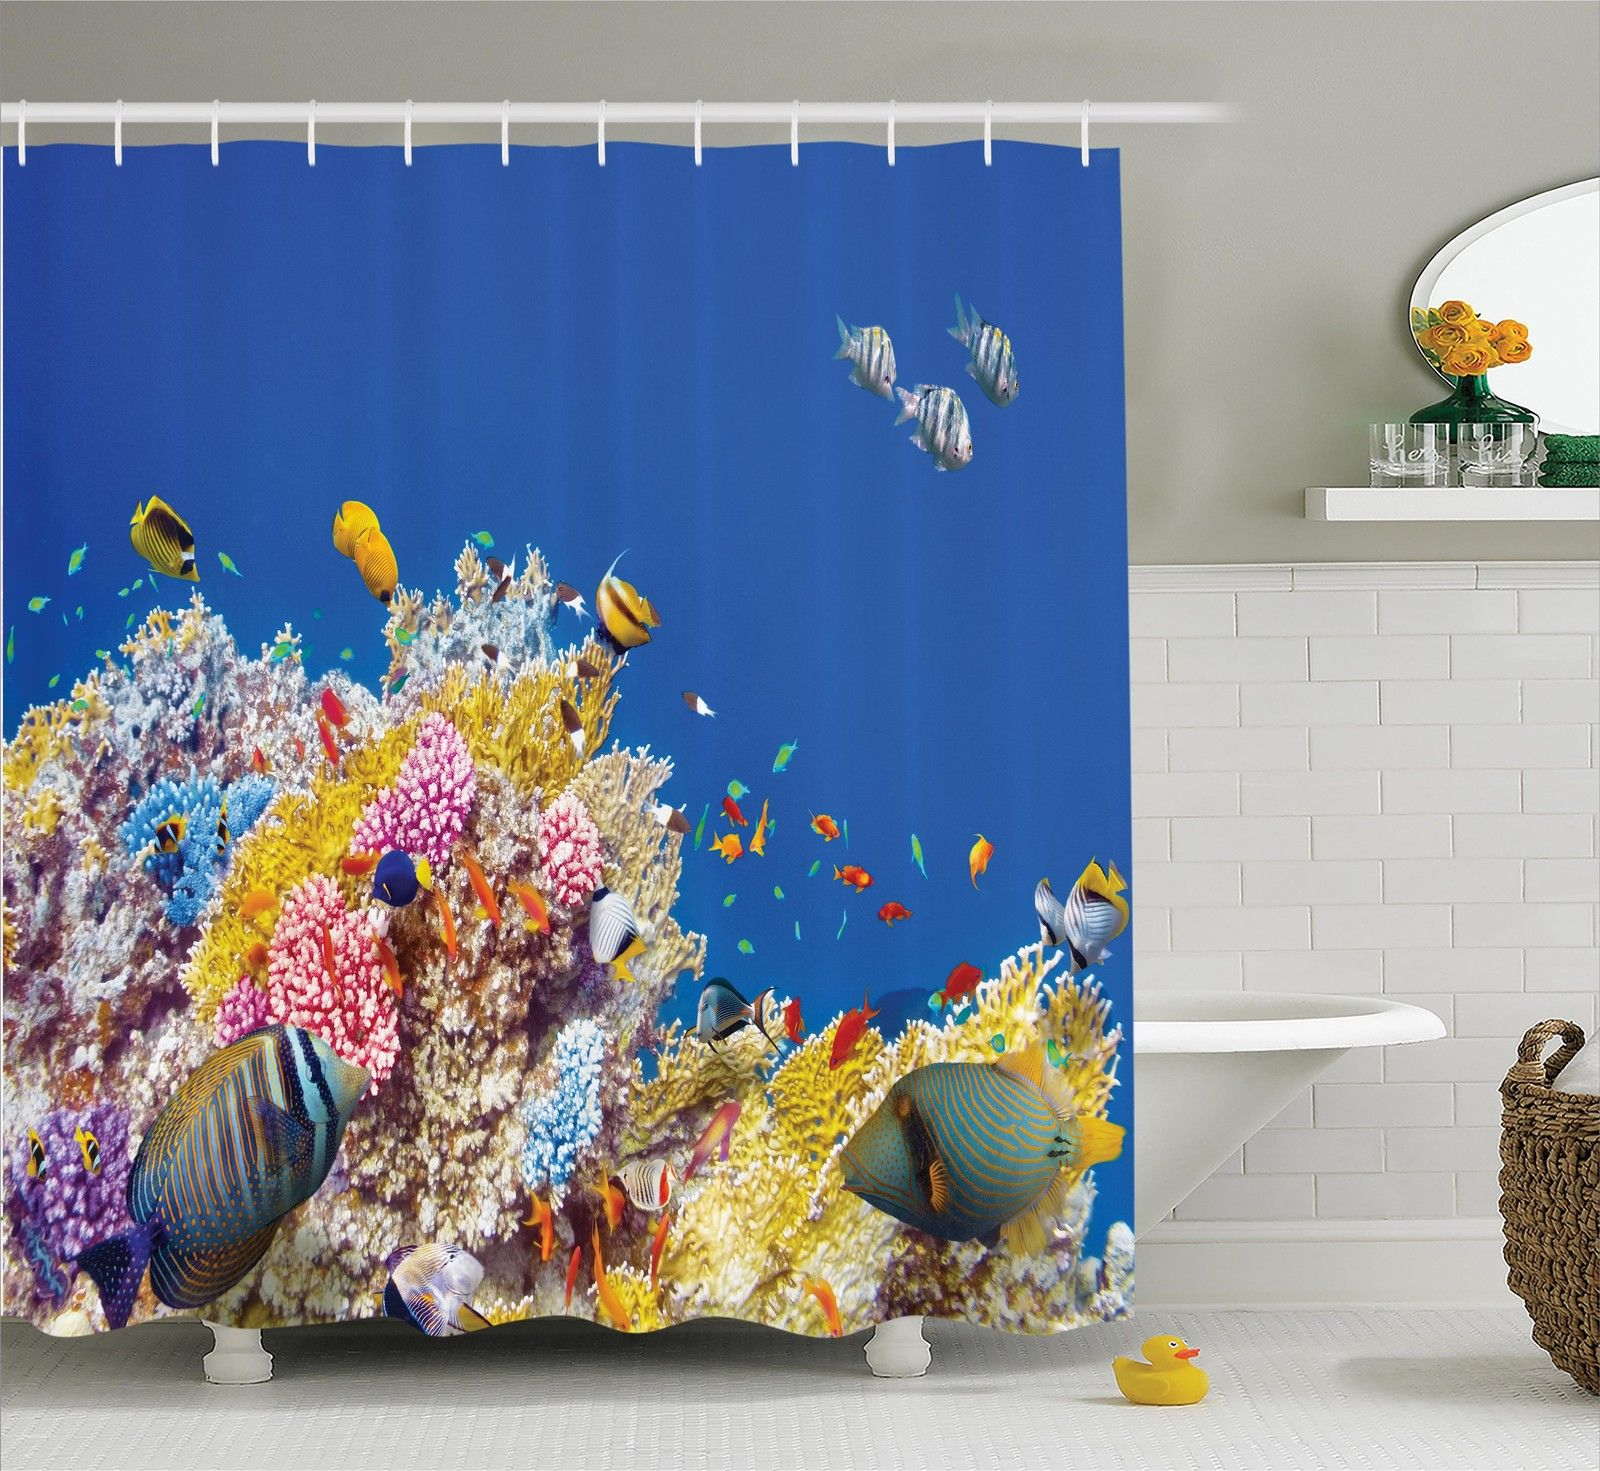 Ocean Decor Shower Curtain Set, Colorful Underwater World With Corals And Tropical Fish Exotic Diving Travel Destination, Bathroom Accessories, 69W X 70L Inches, By Ambesonne